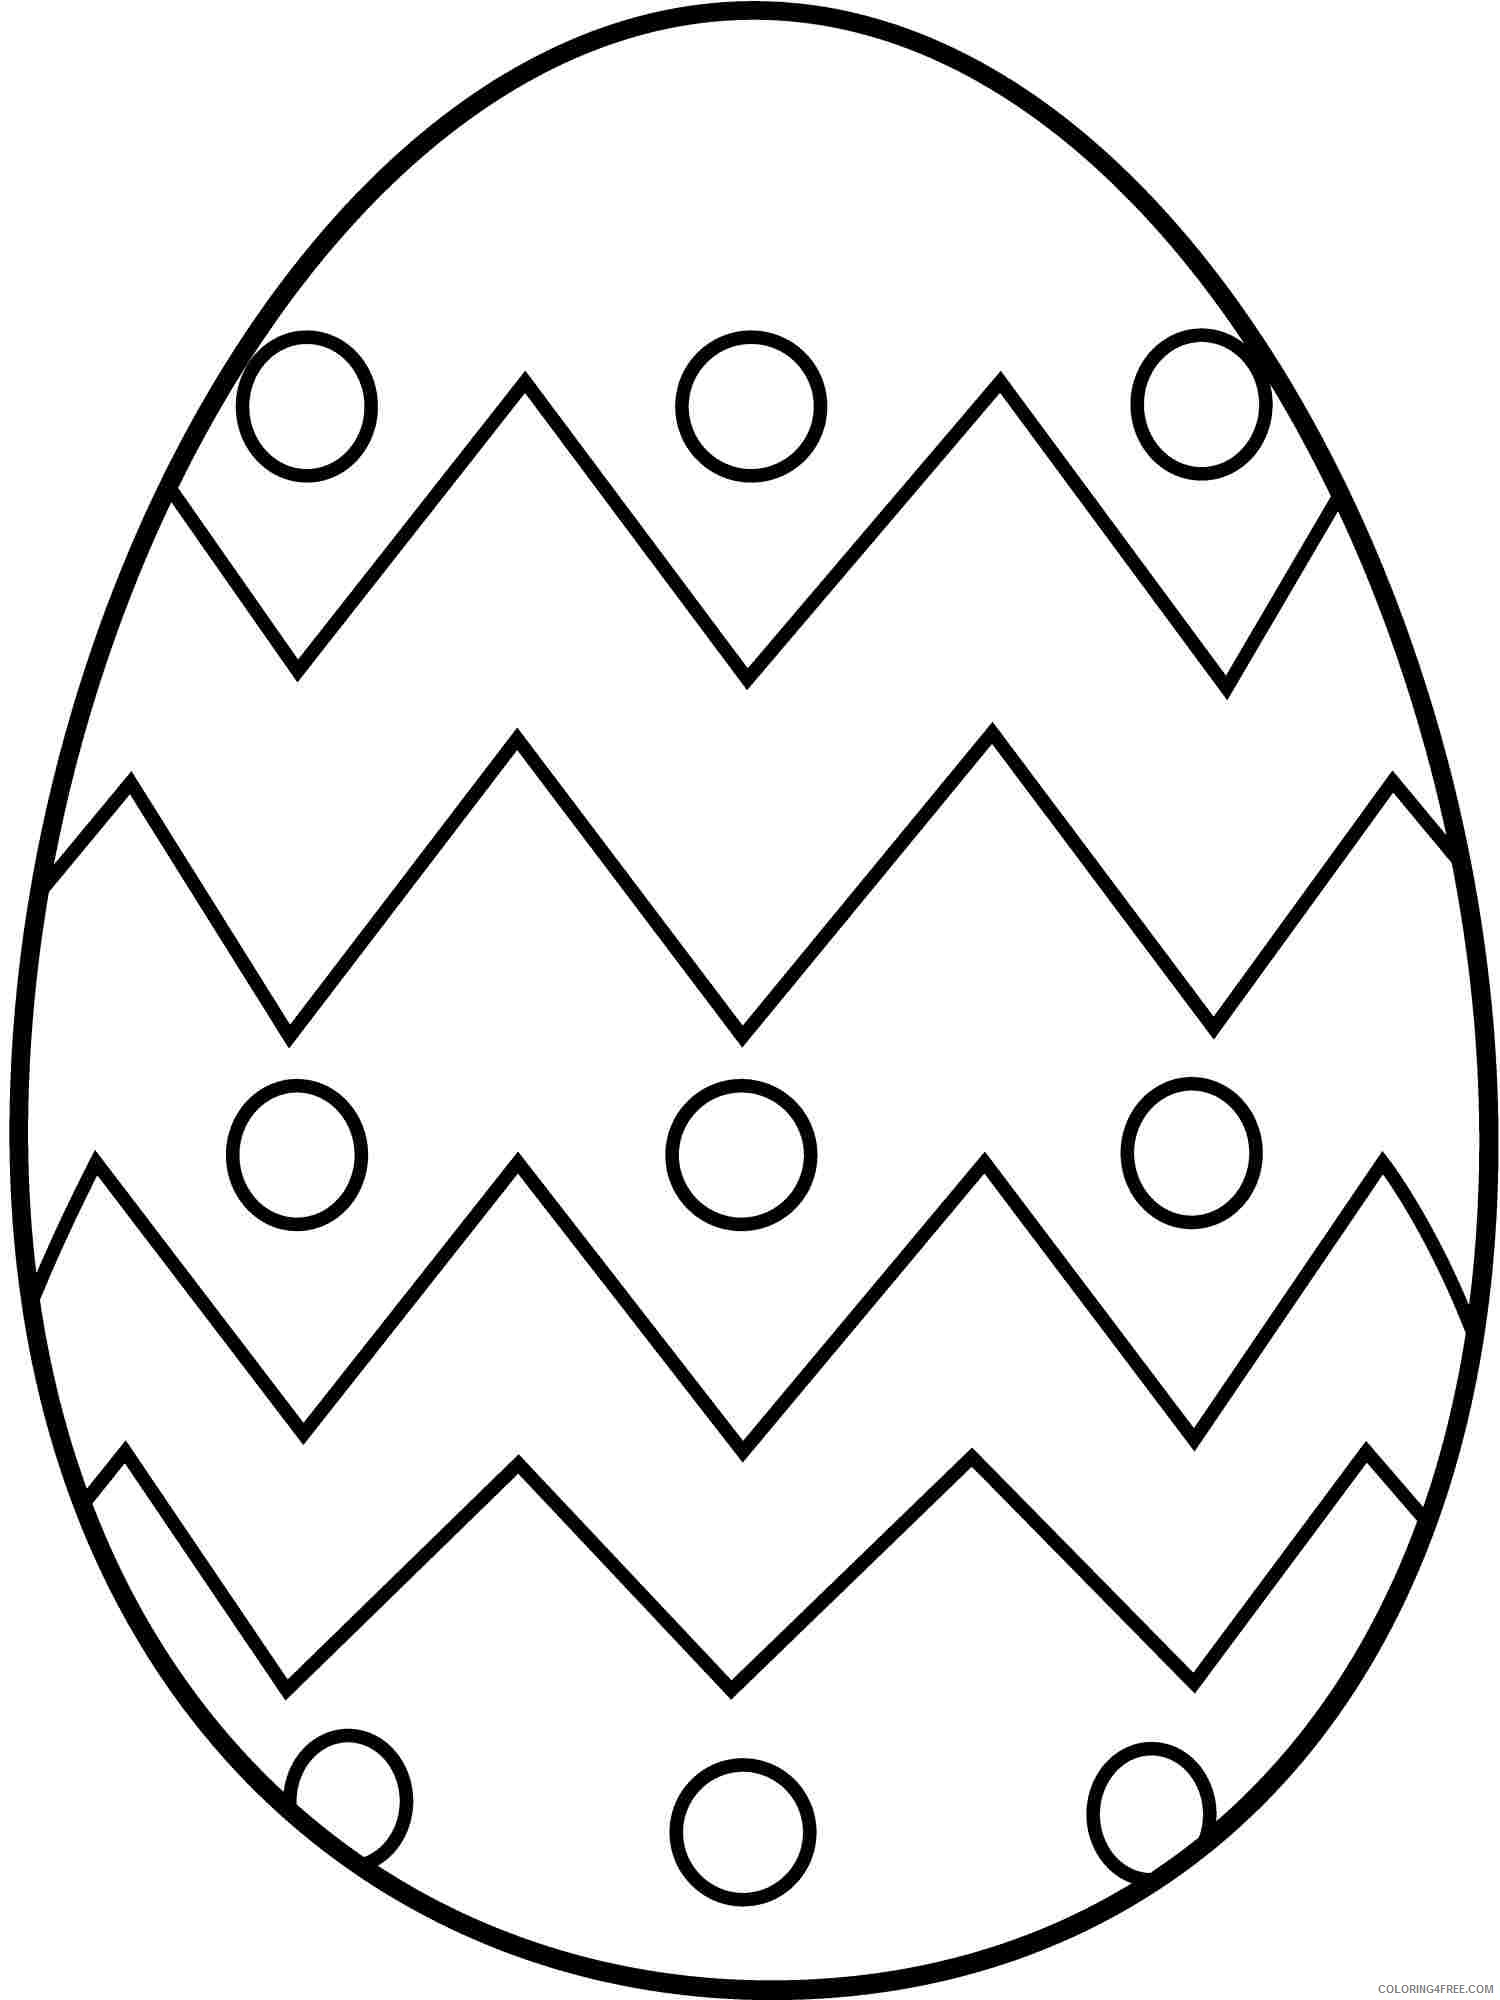 easy easter egg coloring pages Coloring18free   Coloring18Free.com